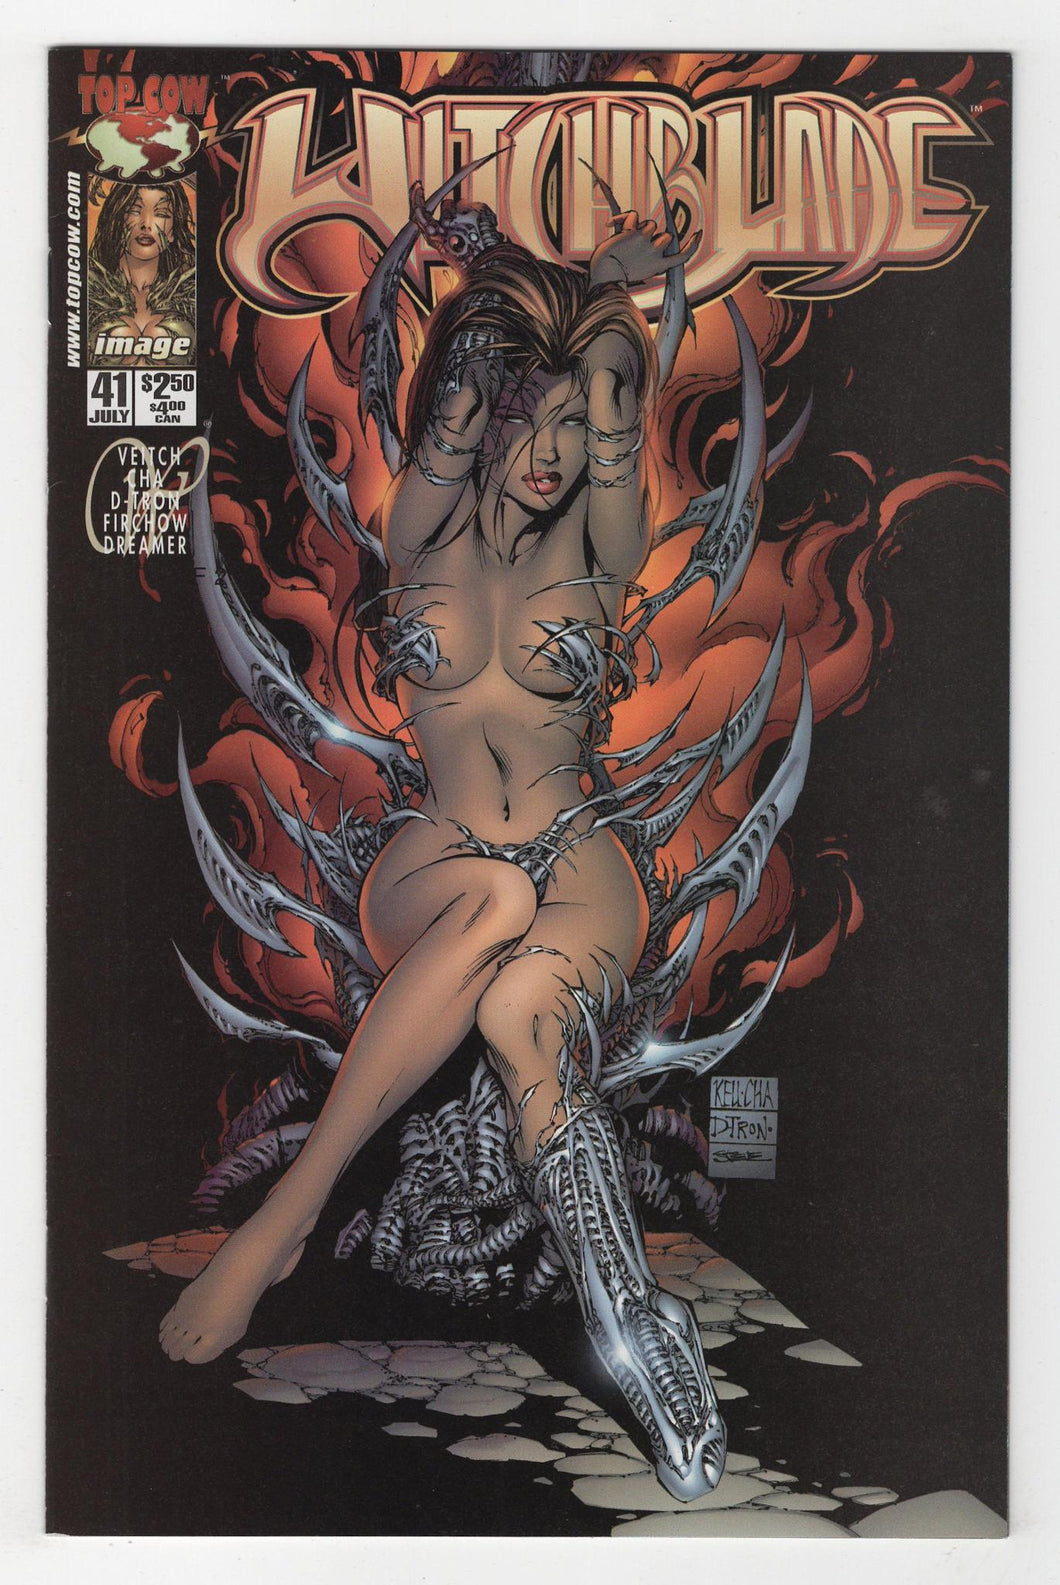 Witchblade #41 Cover Front